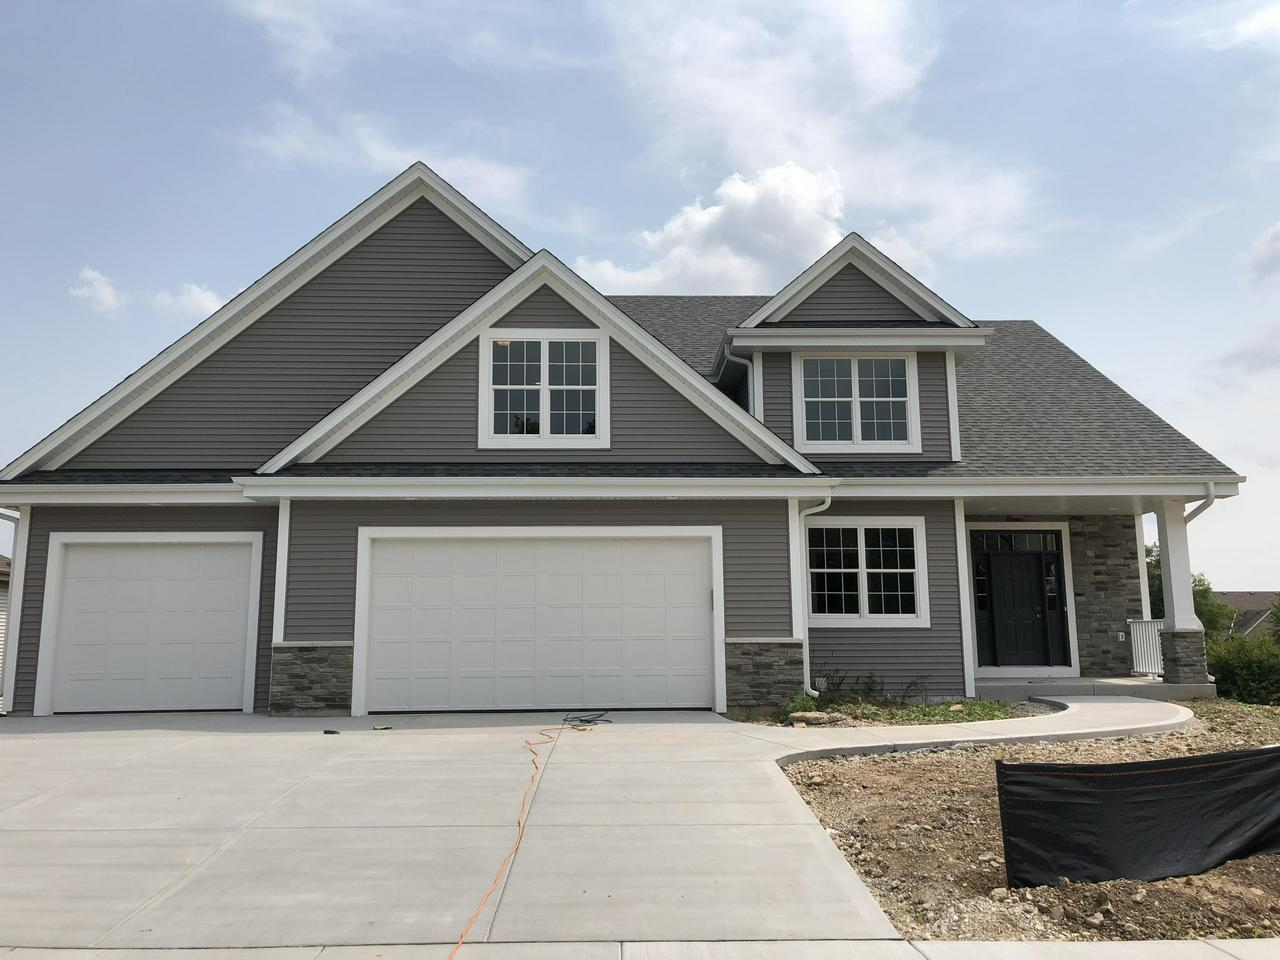 <font color='#C11B17'>Another home sold by Chong Yi Team @ United Realtors!<font color='#0000A0'> This stunning 2 story offers 4BR/2.5BA/3GA/Master Suite w/walk-in closet & private bathroom w/custom walk-in tiled shower. Fireplace in Living room, solid doors w/extra wide trim, granite counters and spacious kitchen & dinette. Lower level offers partial exposure and is plumbed for a full bath. **Ceramic tiles in bathrooms/laminate wood floors in Kitchen & Dinette**  Reserve today! <Photos are from a similar model>